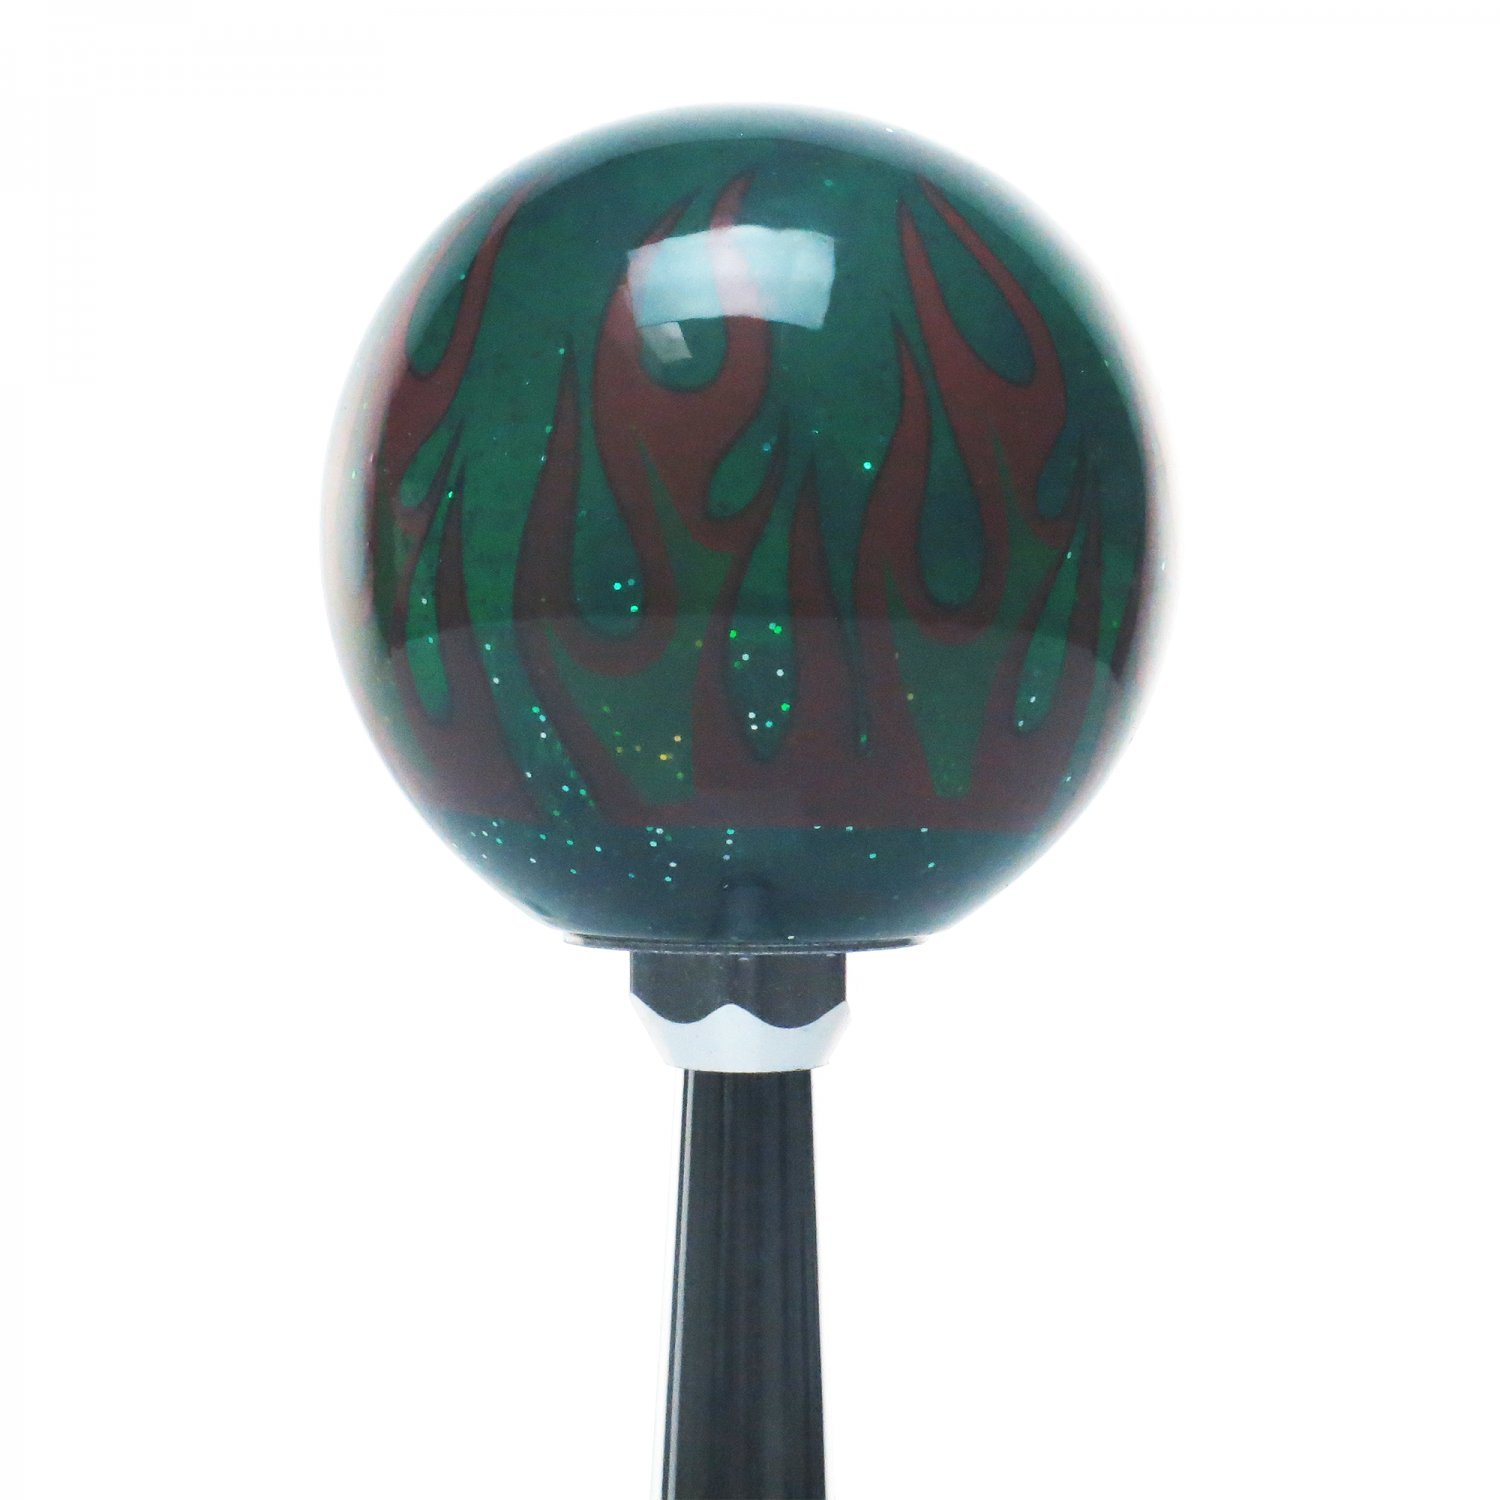 American Shifter 300140 Shift Knob White Yuno Green Flame Metal Flake with M16 x 1.5 Insert